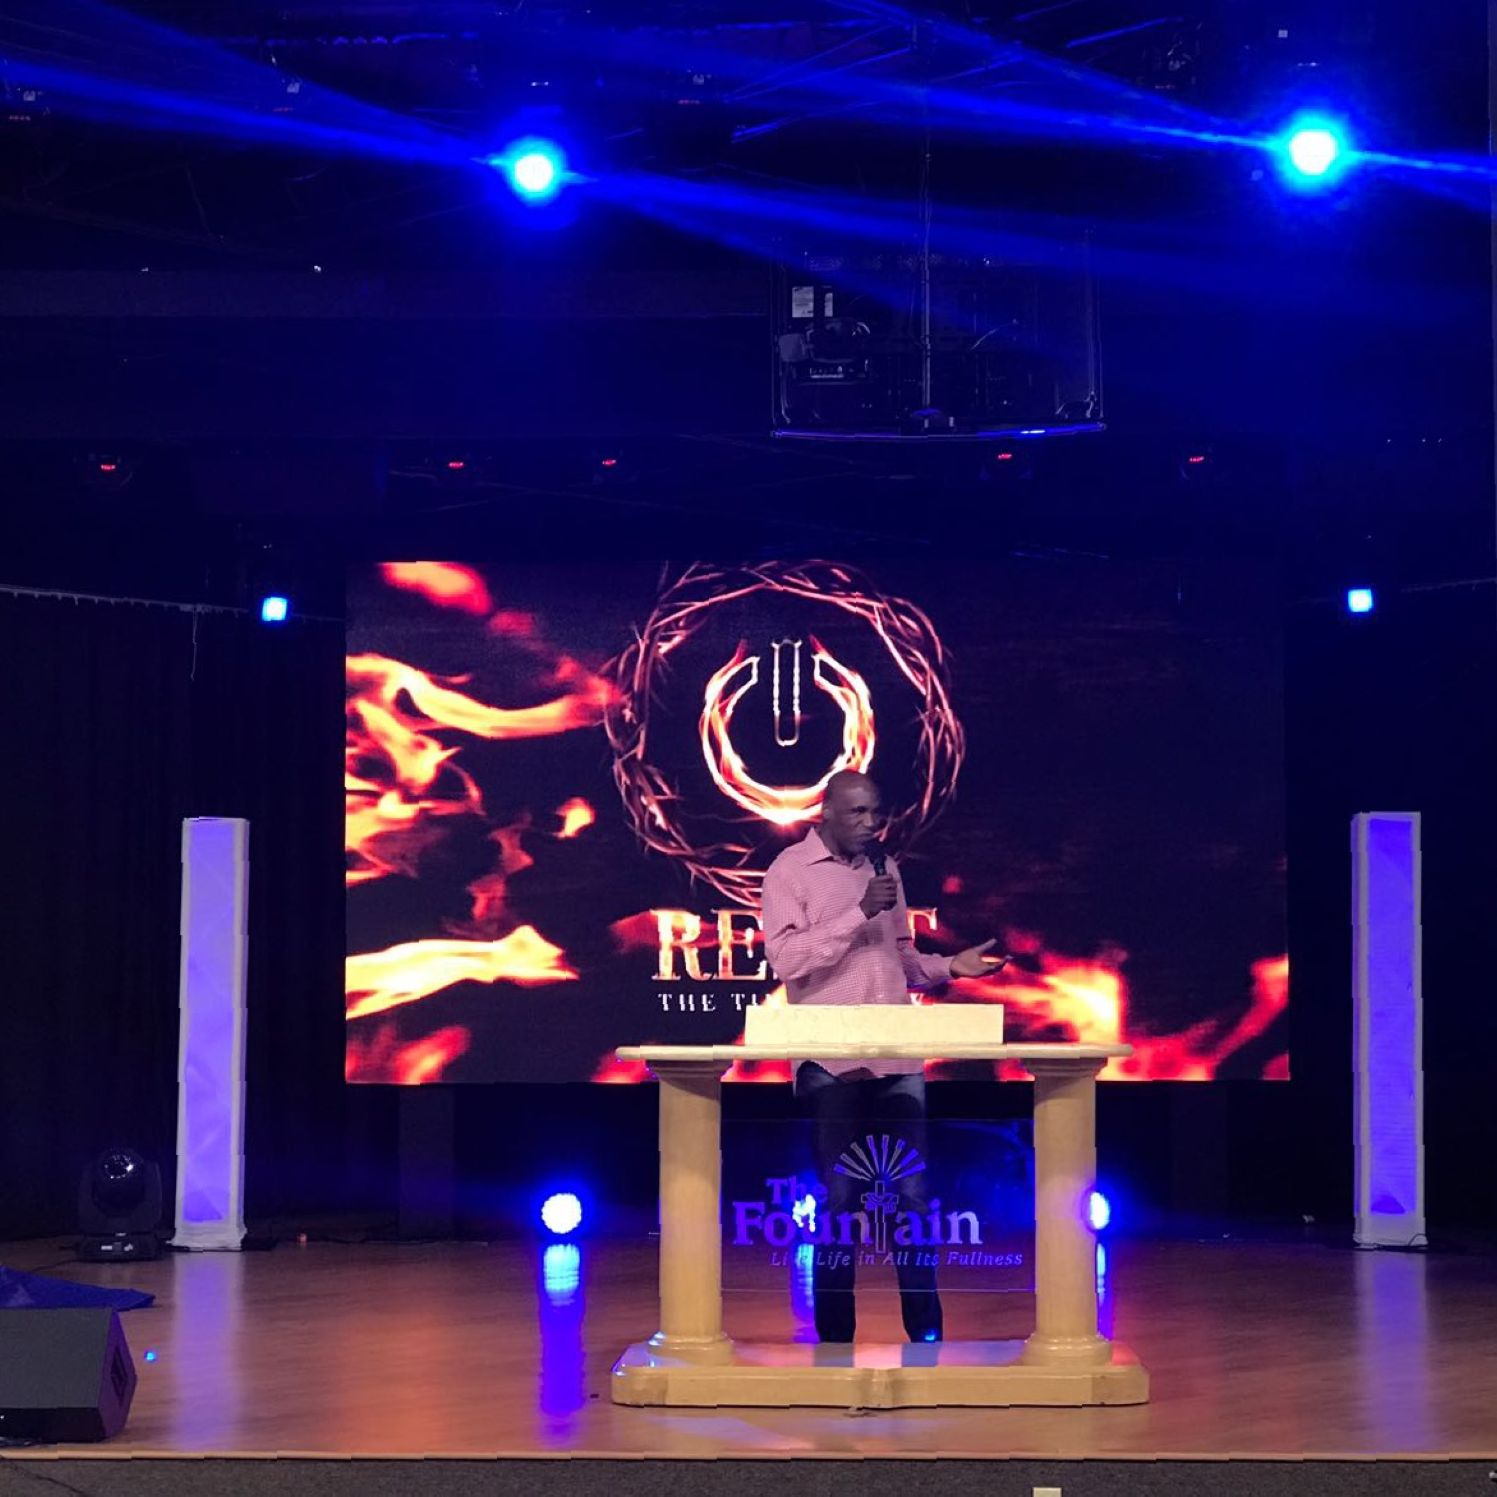 UPGRADE-CHURCH-SERVICES-WITH-LED-SCREENS